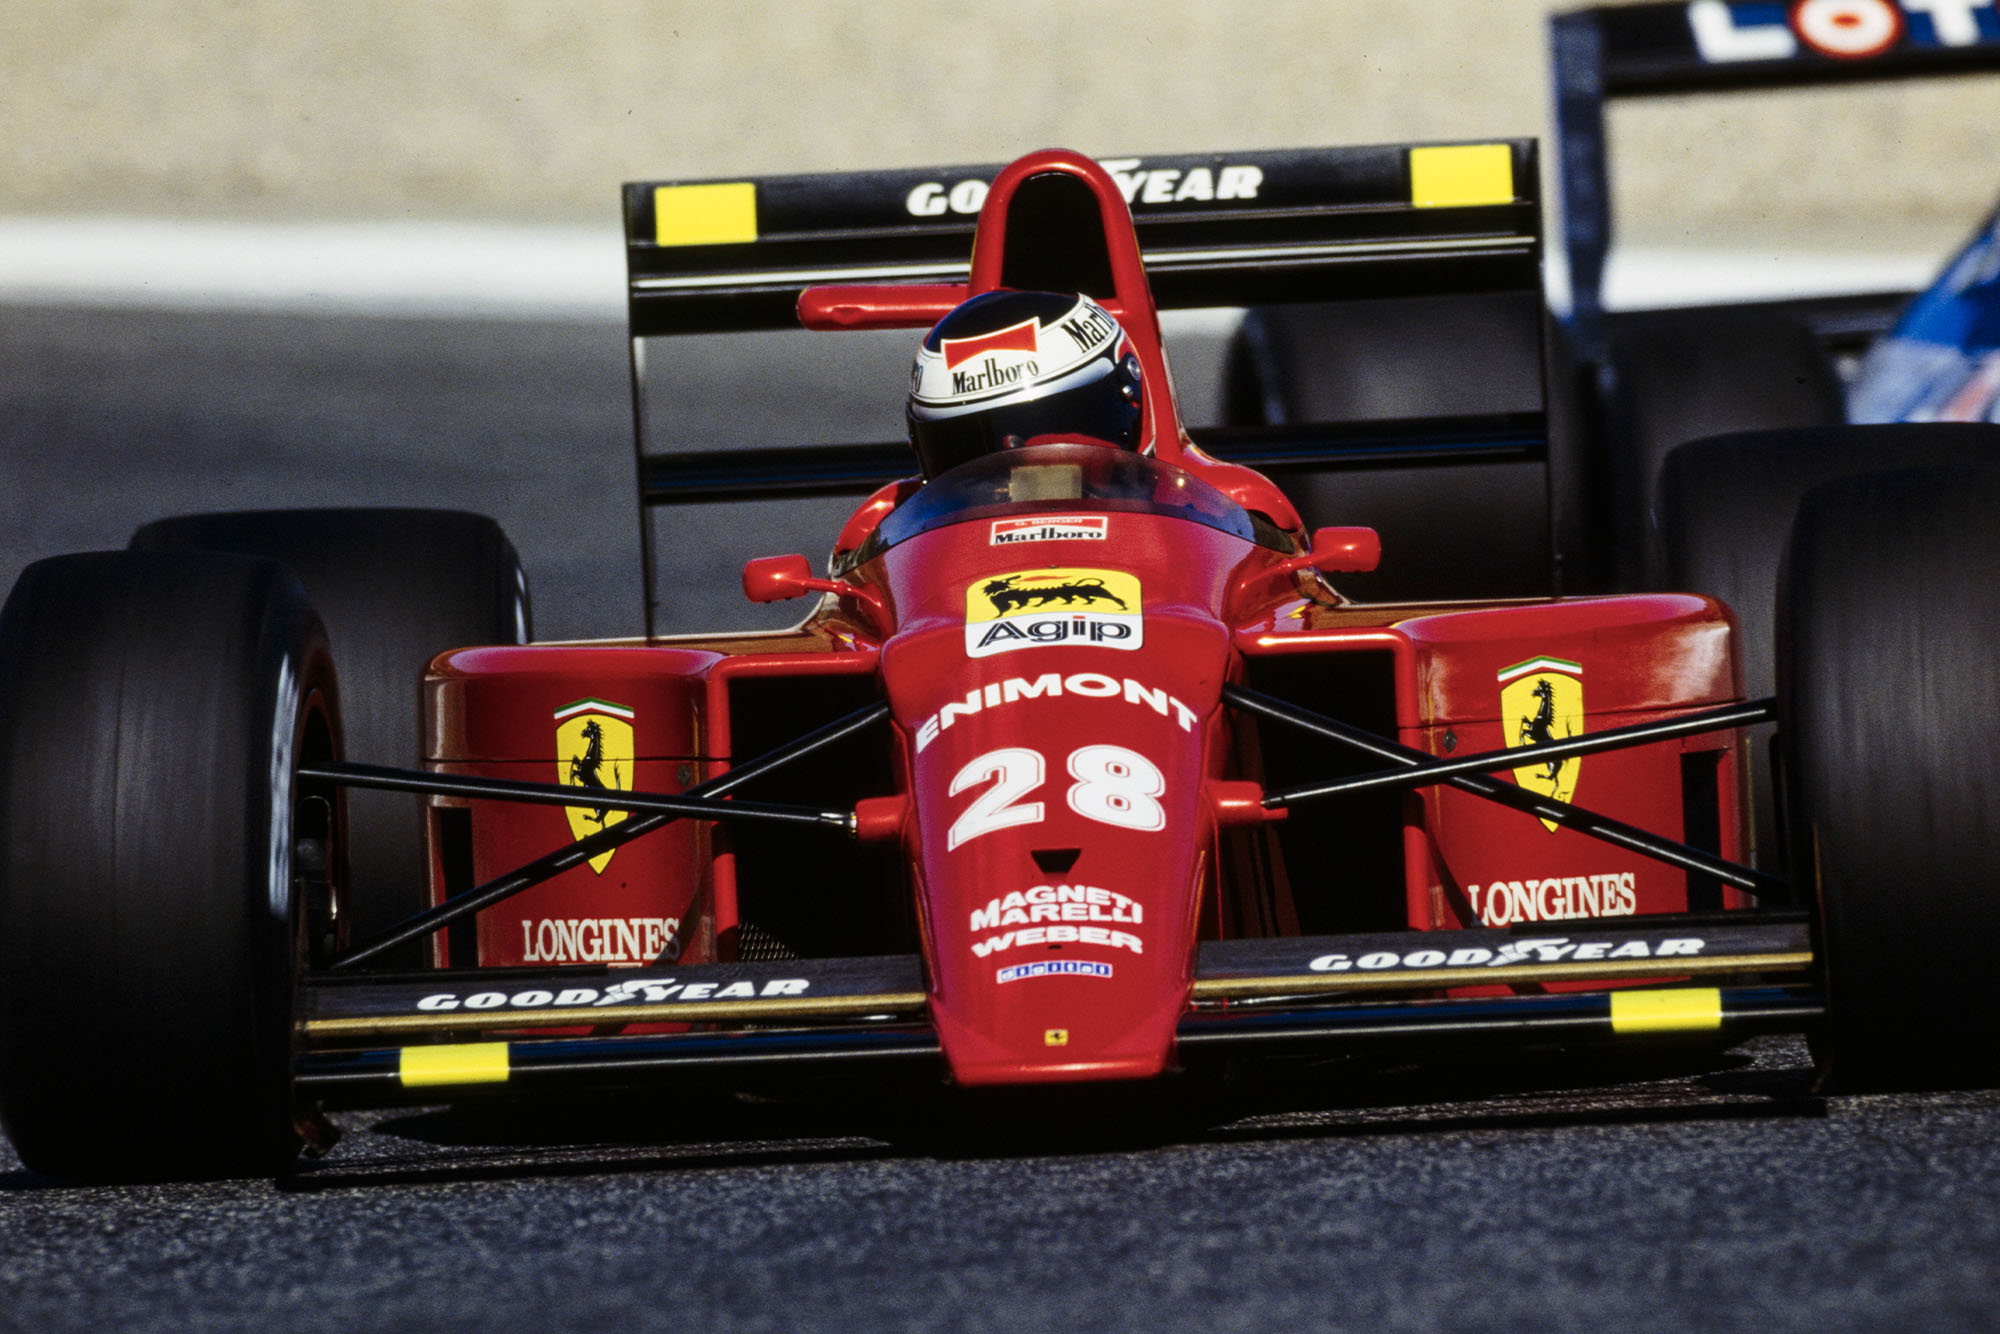 1989 POR GP feature